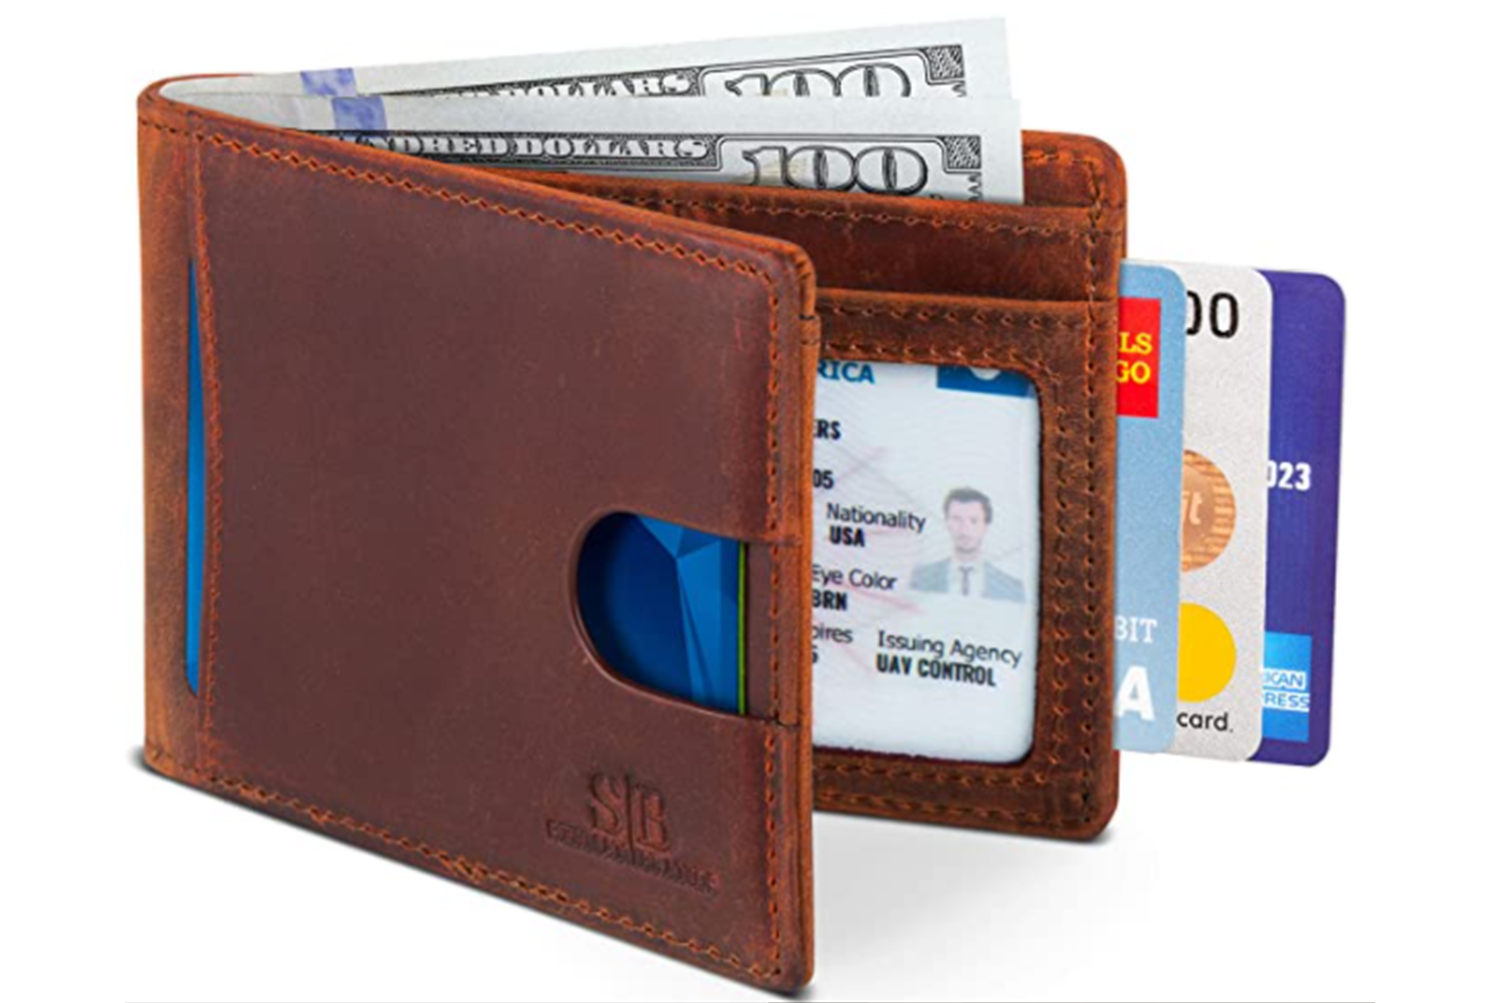 15 POST Disaster Money leather rfid wallet